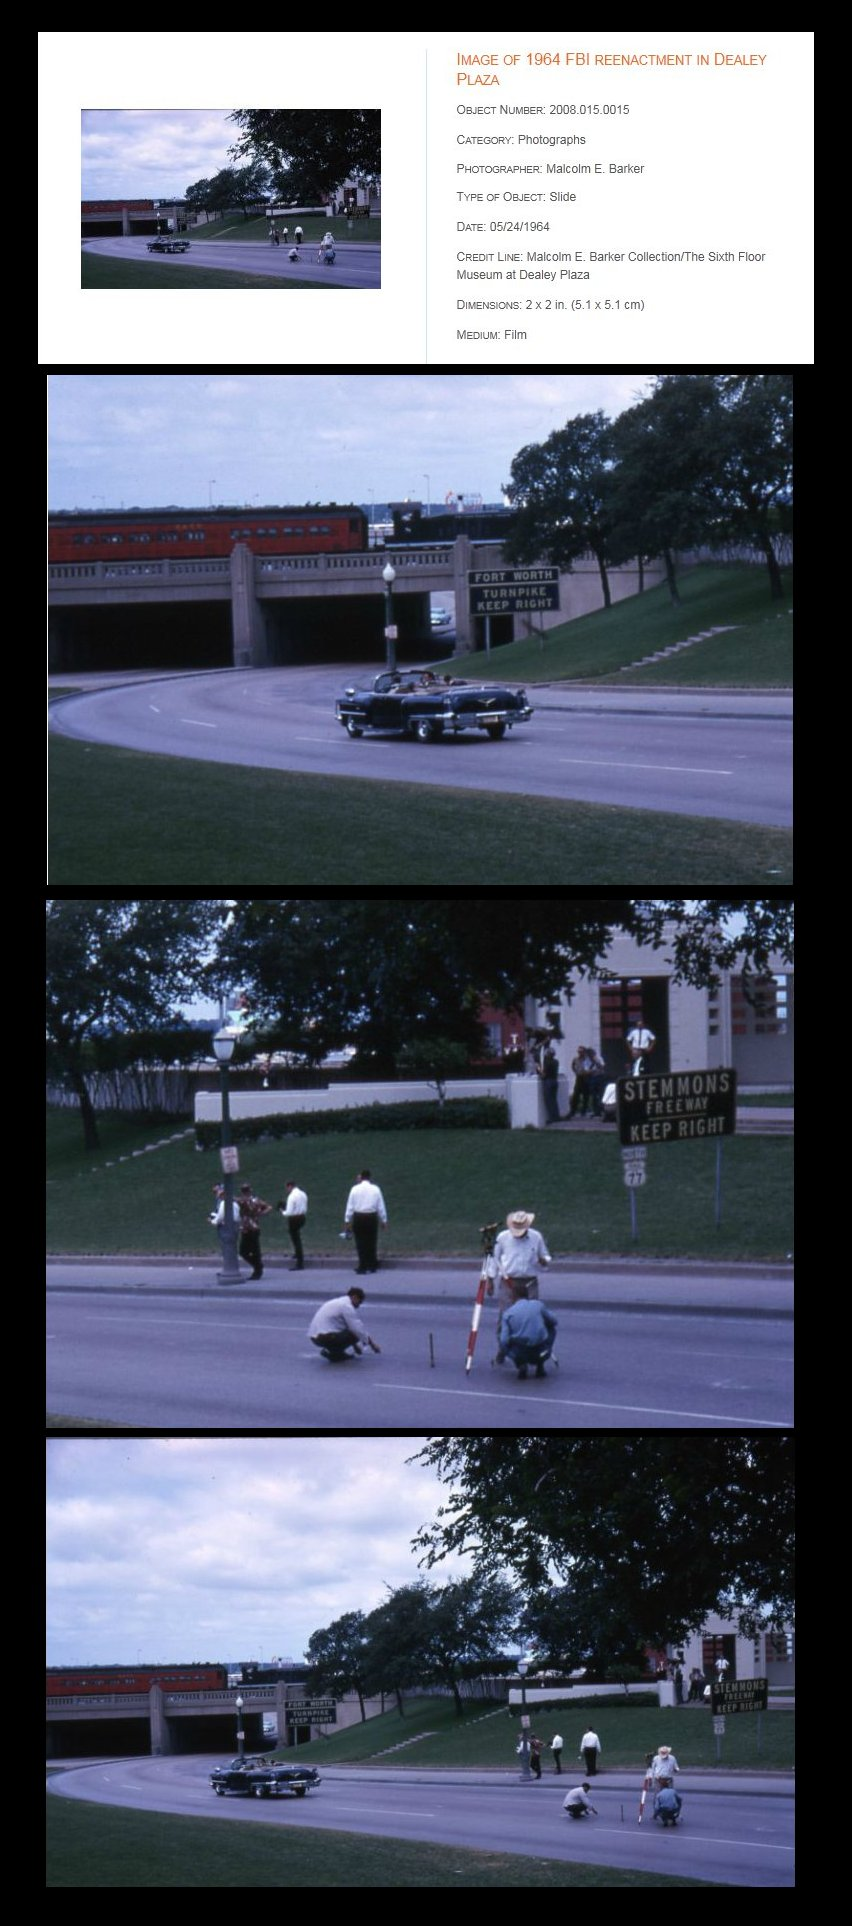 1964_FBI_REENACTMENT_color.jpg